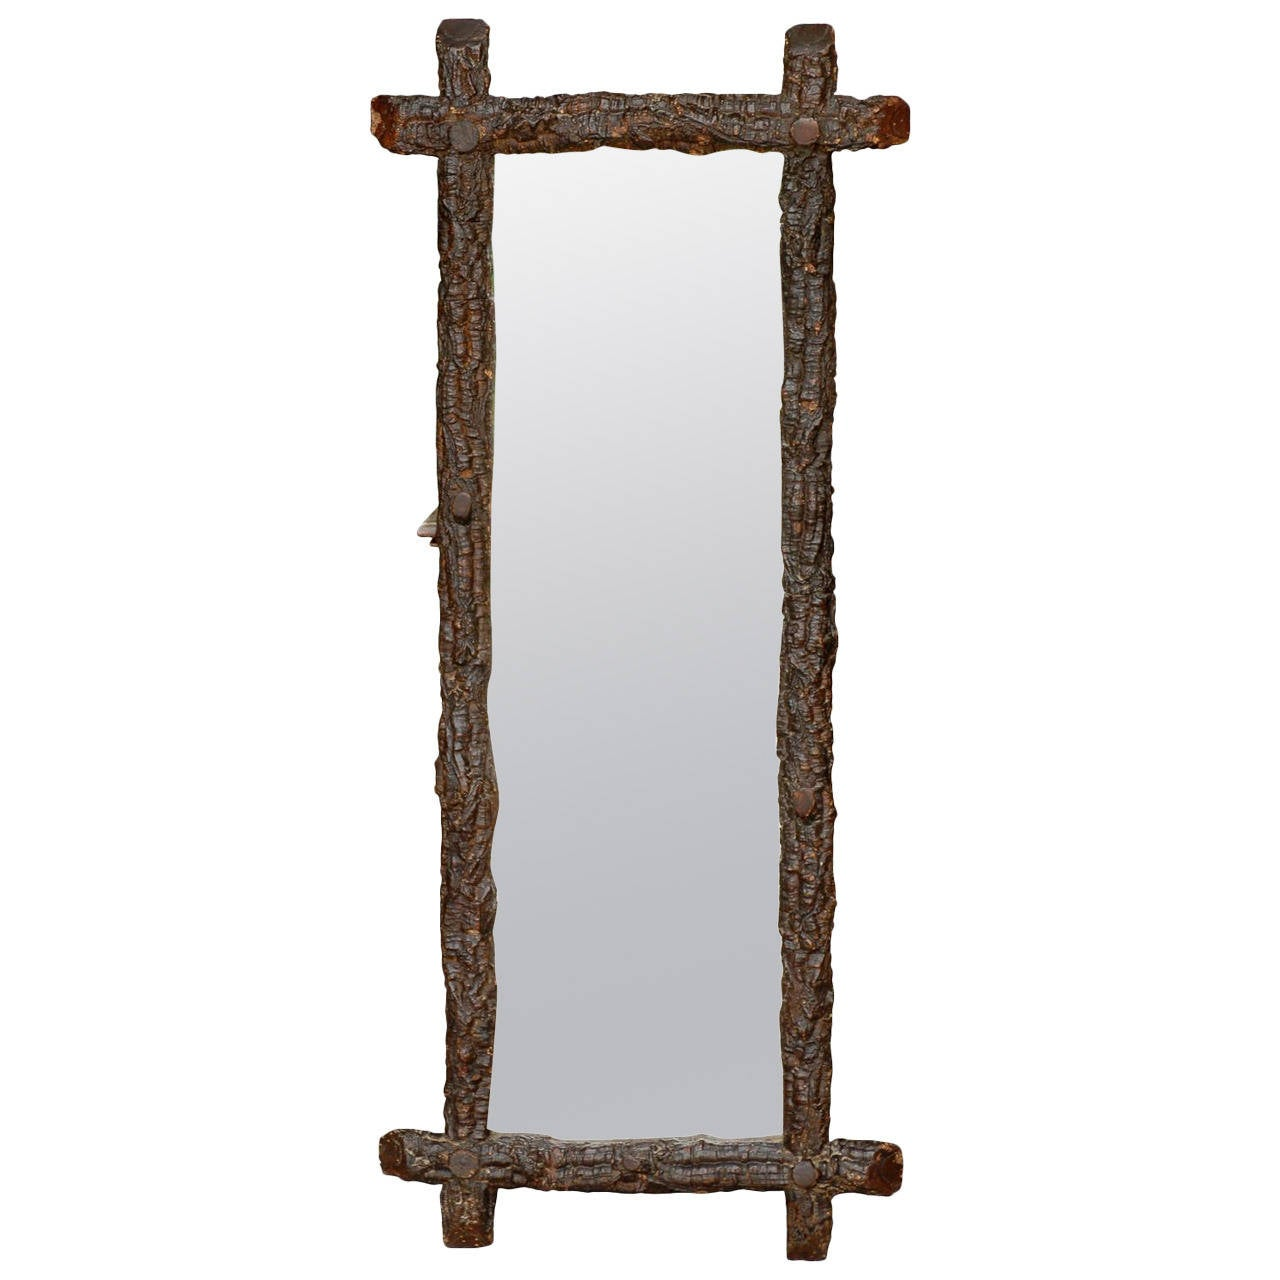 Narrow black forest mirror at 1stdibs for Narrow mirror